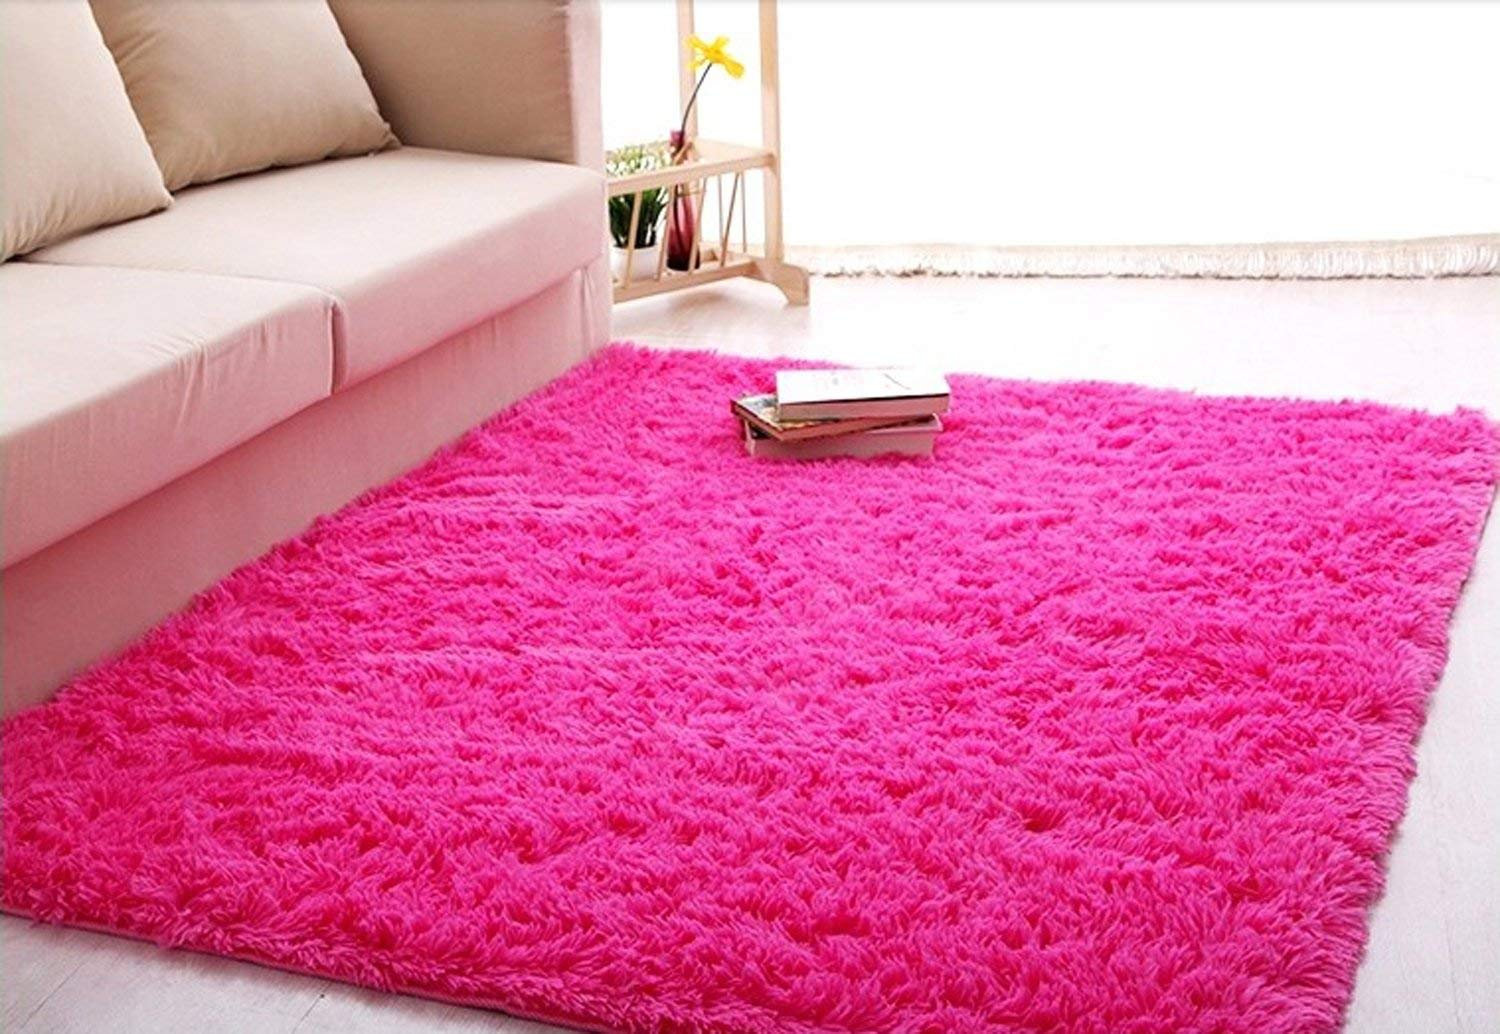 pink area rugs amazon.com: forever lover soft indoor morden shaggy area rug pad, 2.5 x OORKUUI